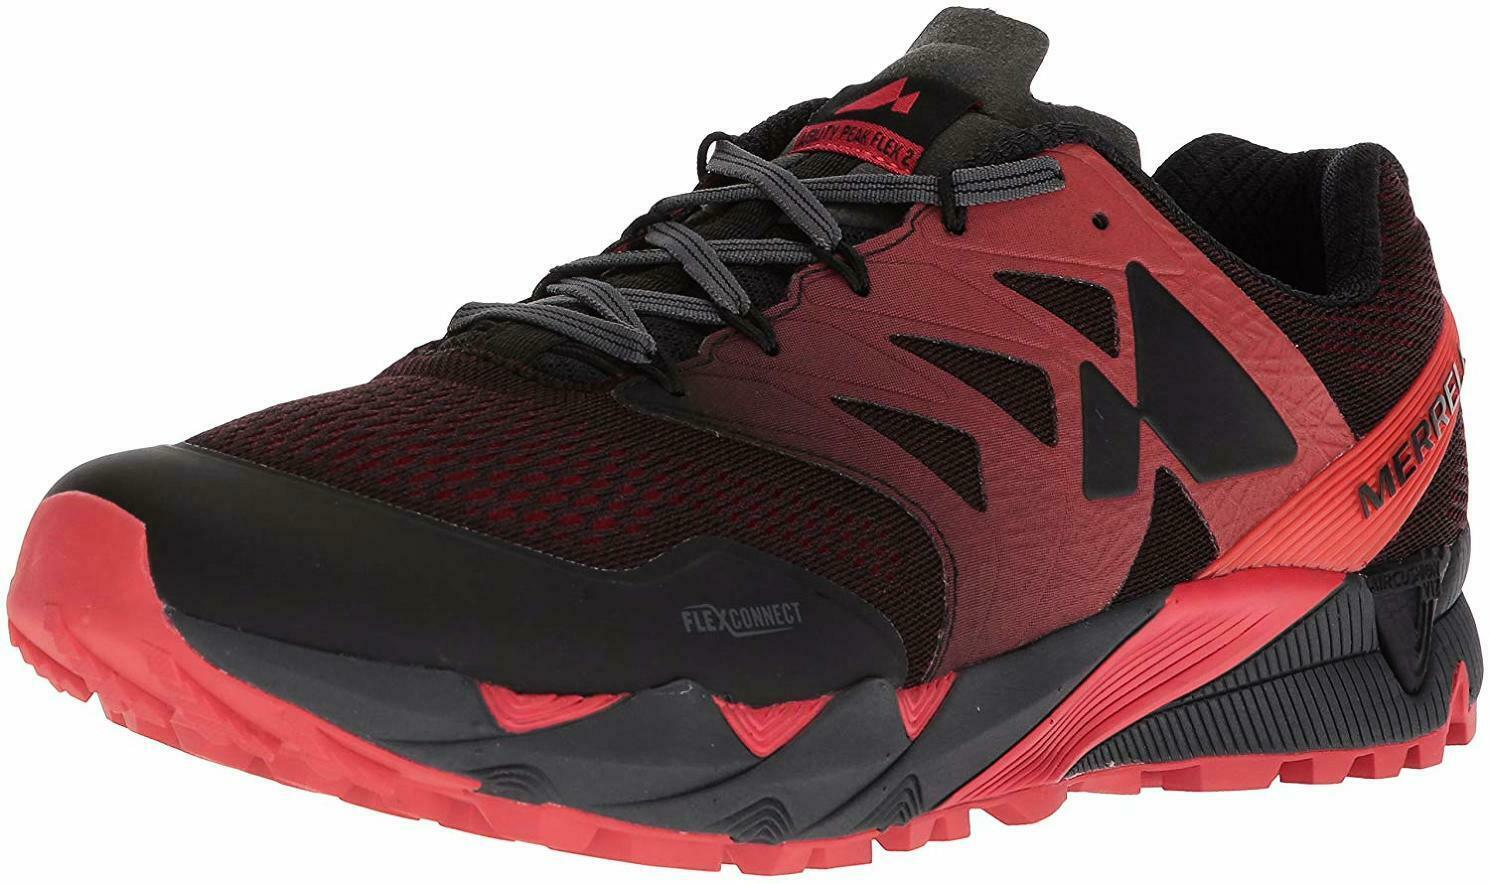 Merrell Men's Agility Peak Flex 2 E-mesh Sneaker - Choose SZ color